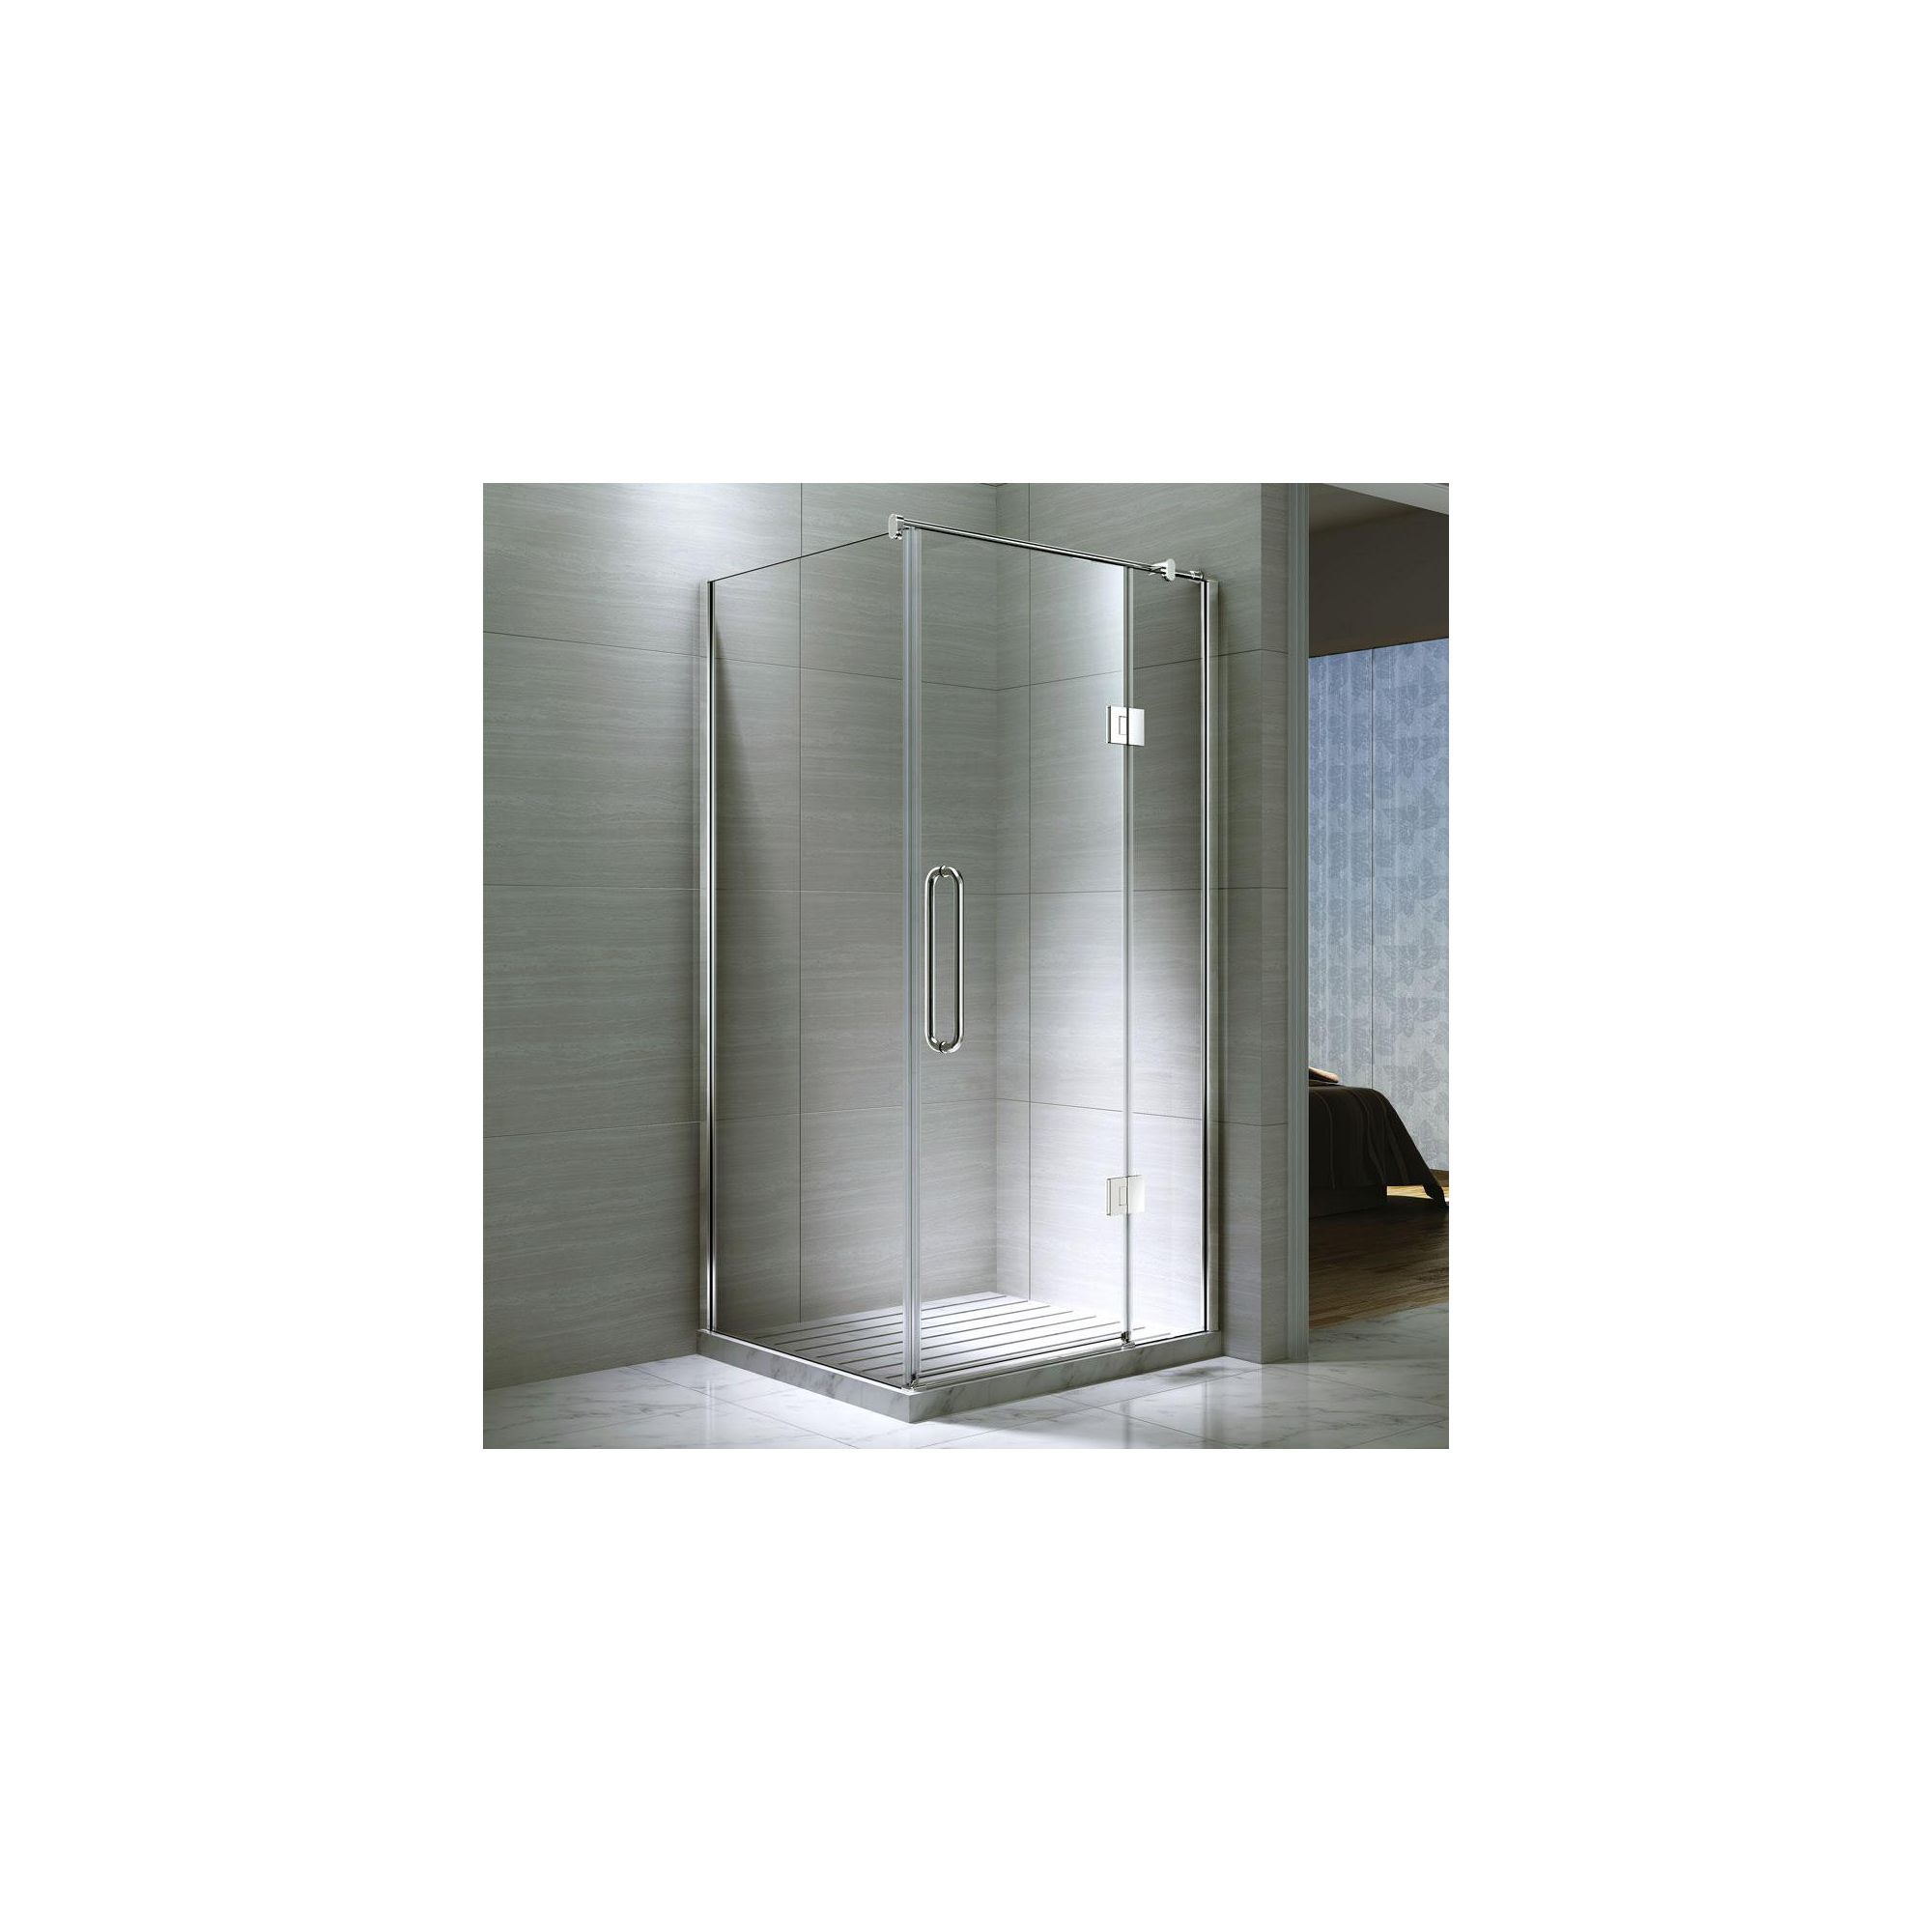 Desire Ten Hinged Shower Door with Side Panel, 800mm x 800mm, Semi-Frameless, 10mm Glass at Tesco Direct